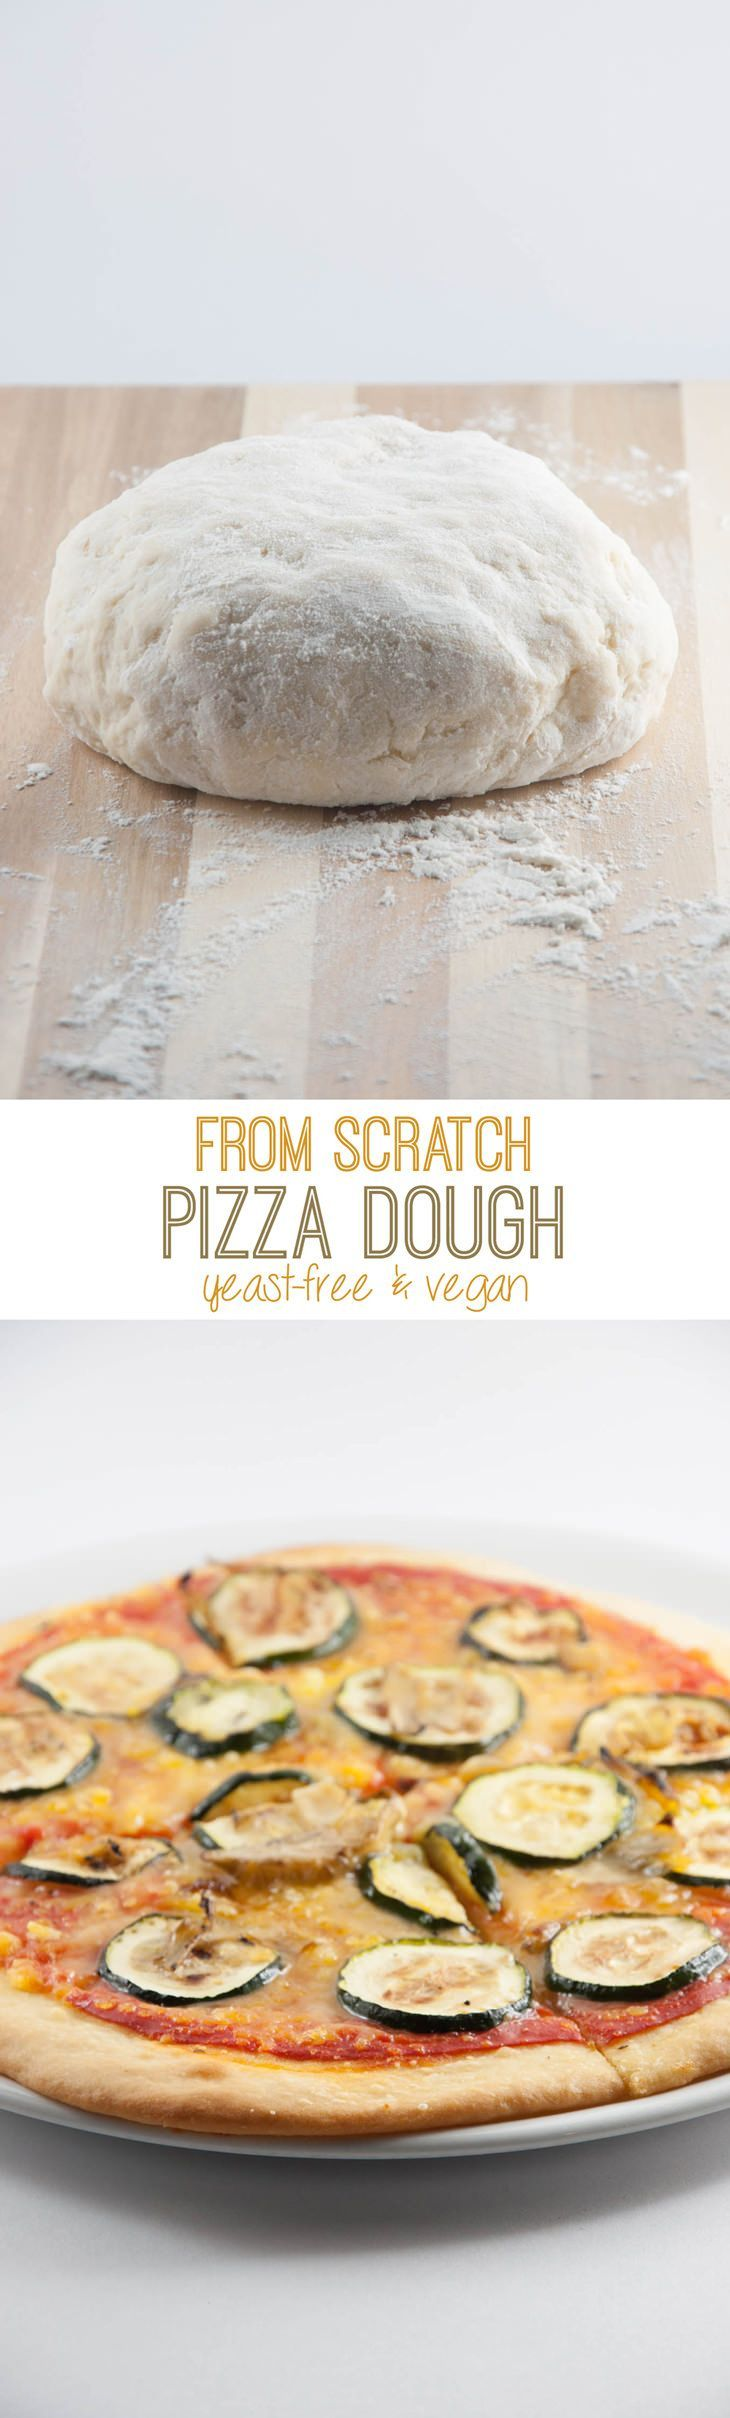 easy homemade pizza dough with self rising flour. yeast-free pizza dough - add homemade/ jar of sauce or hummus and vegetables, olives, whatever you like on your pizza. i\u0027ll try using self- raising easy homemade with self rising flour e